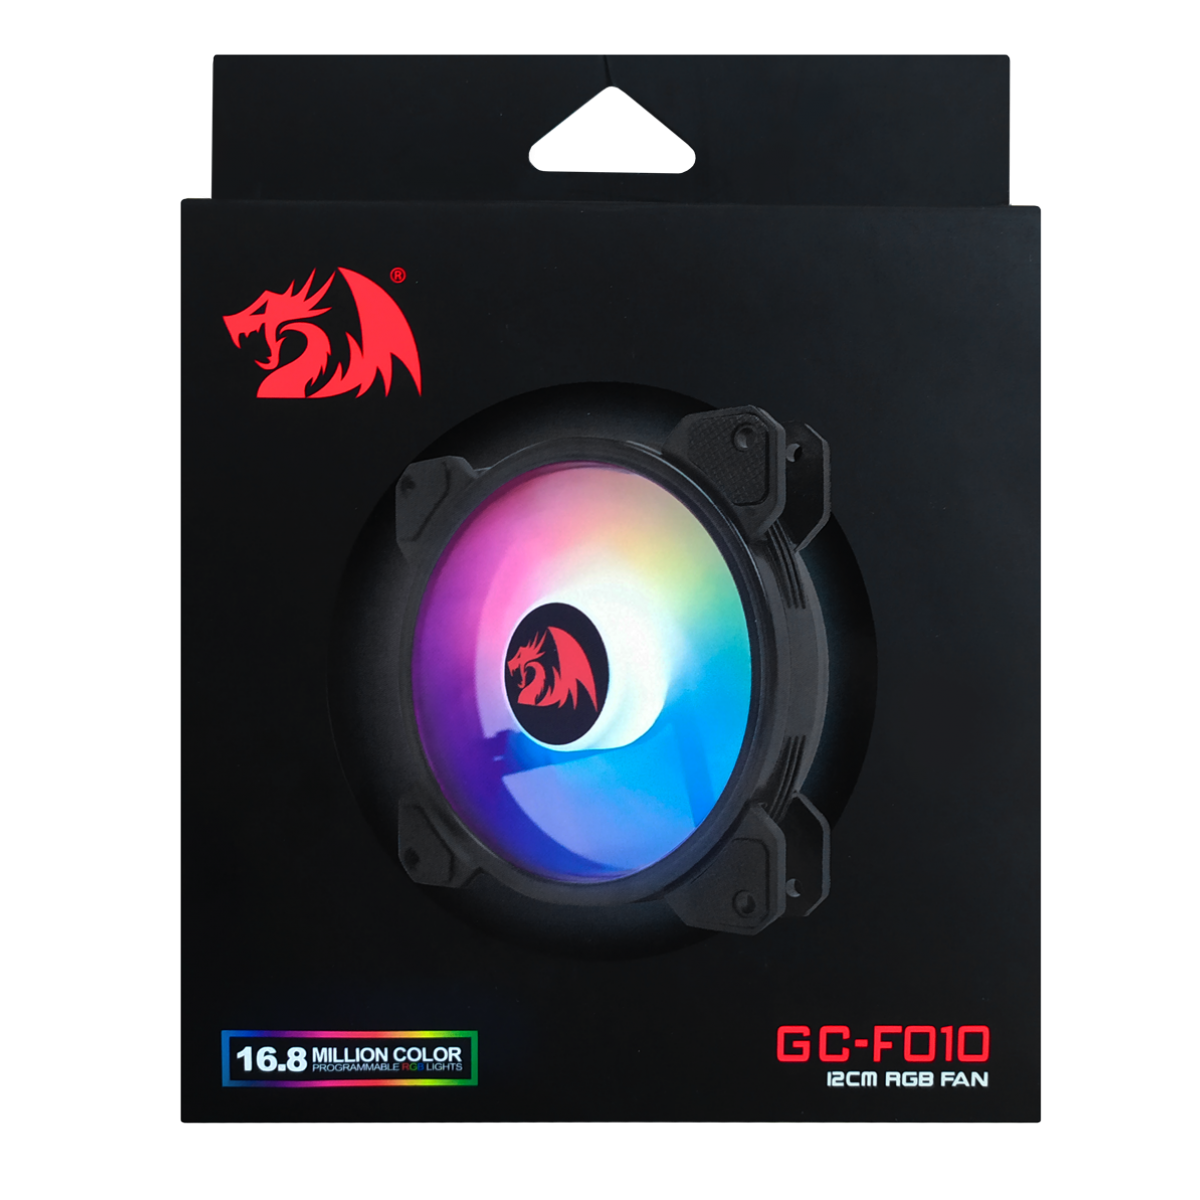 Cooler para gabinete Redragon, RGB, 120mm, GC-F010